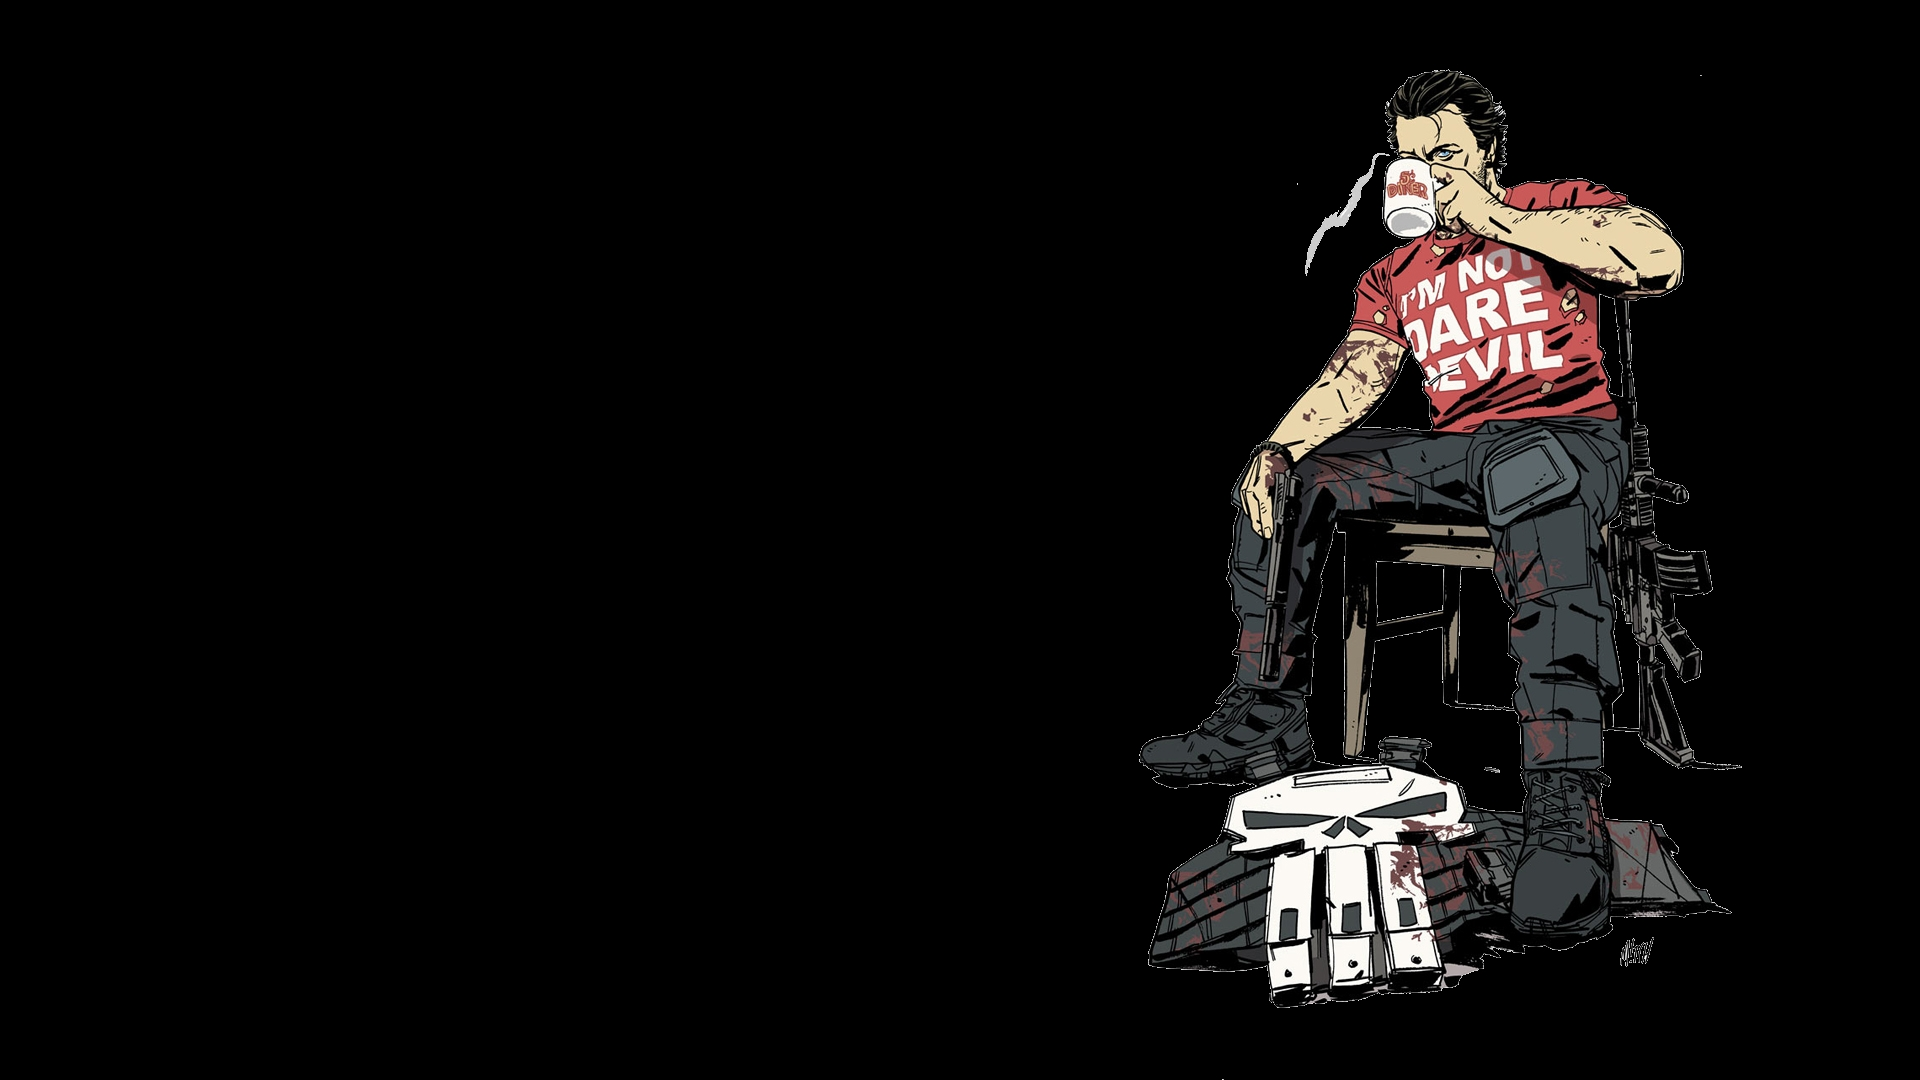 punisher full hd wallpaper and background image